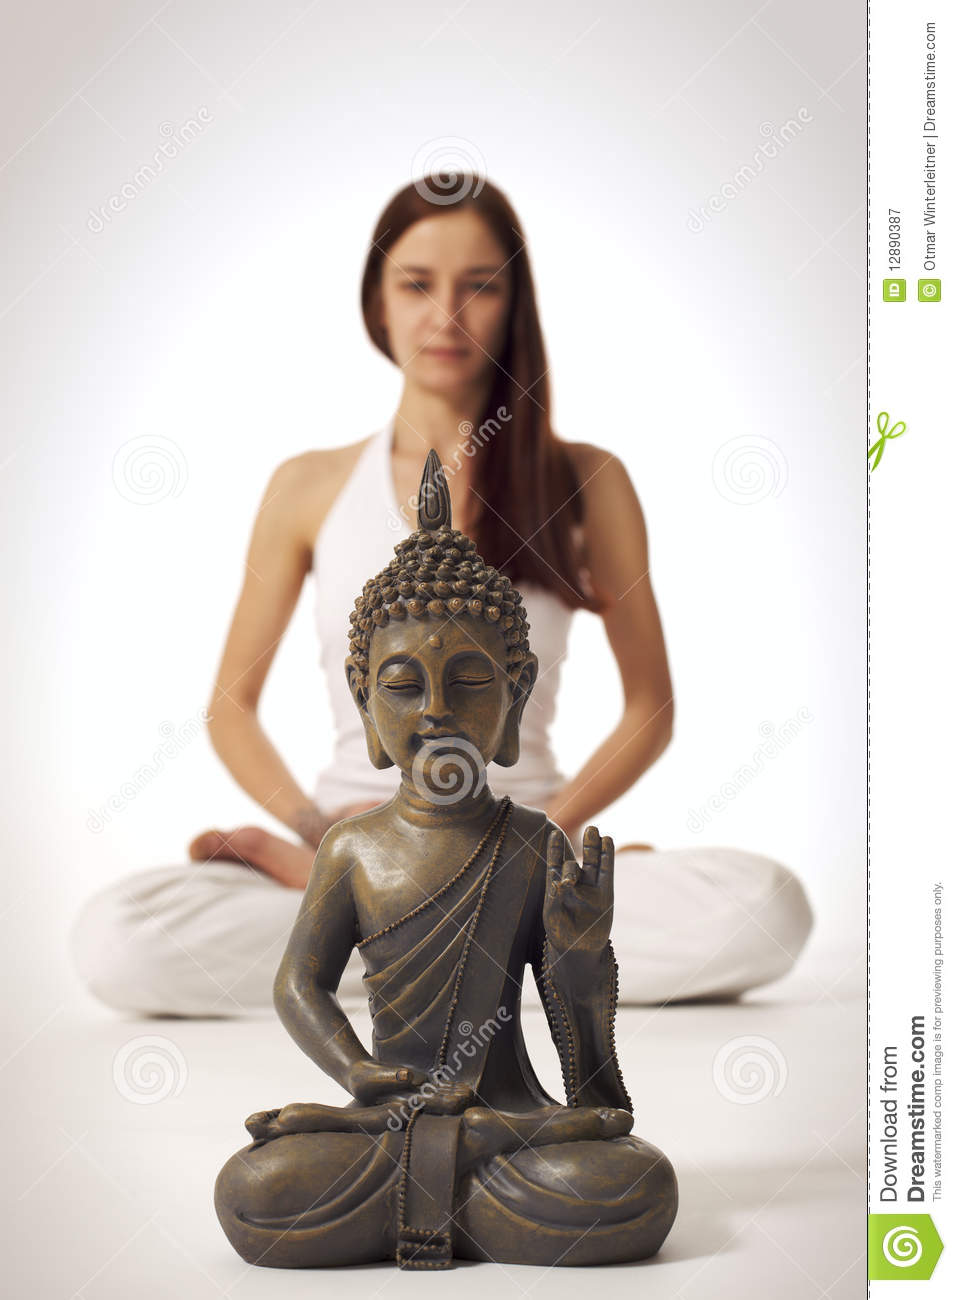 vilonia buddhist single women Tax-exempt organizations in arkansas  po box 81, vilonia, ar 72173-0081: 2002-01:  ecumenical buddhist educational center:.